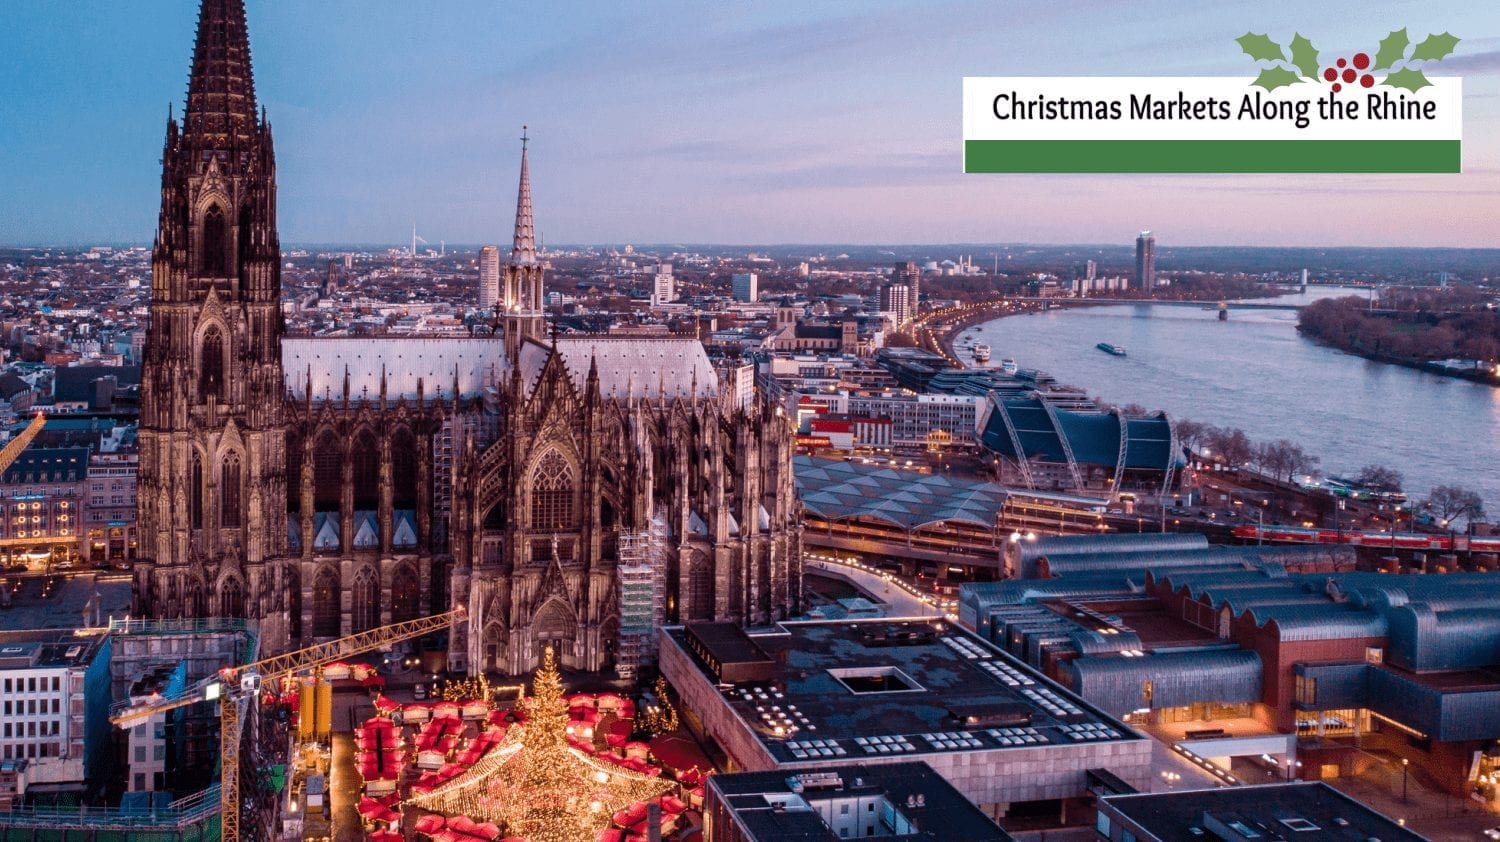 Christmas Markets Along the Rhine – Visit Christmas Markets by Boat